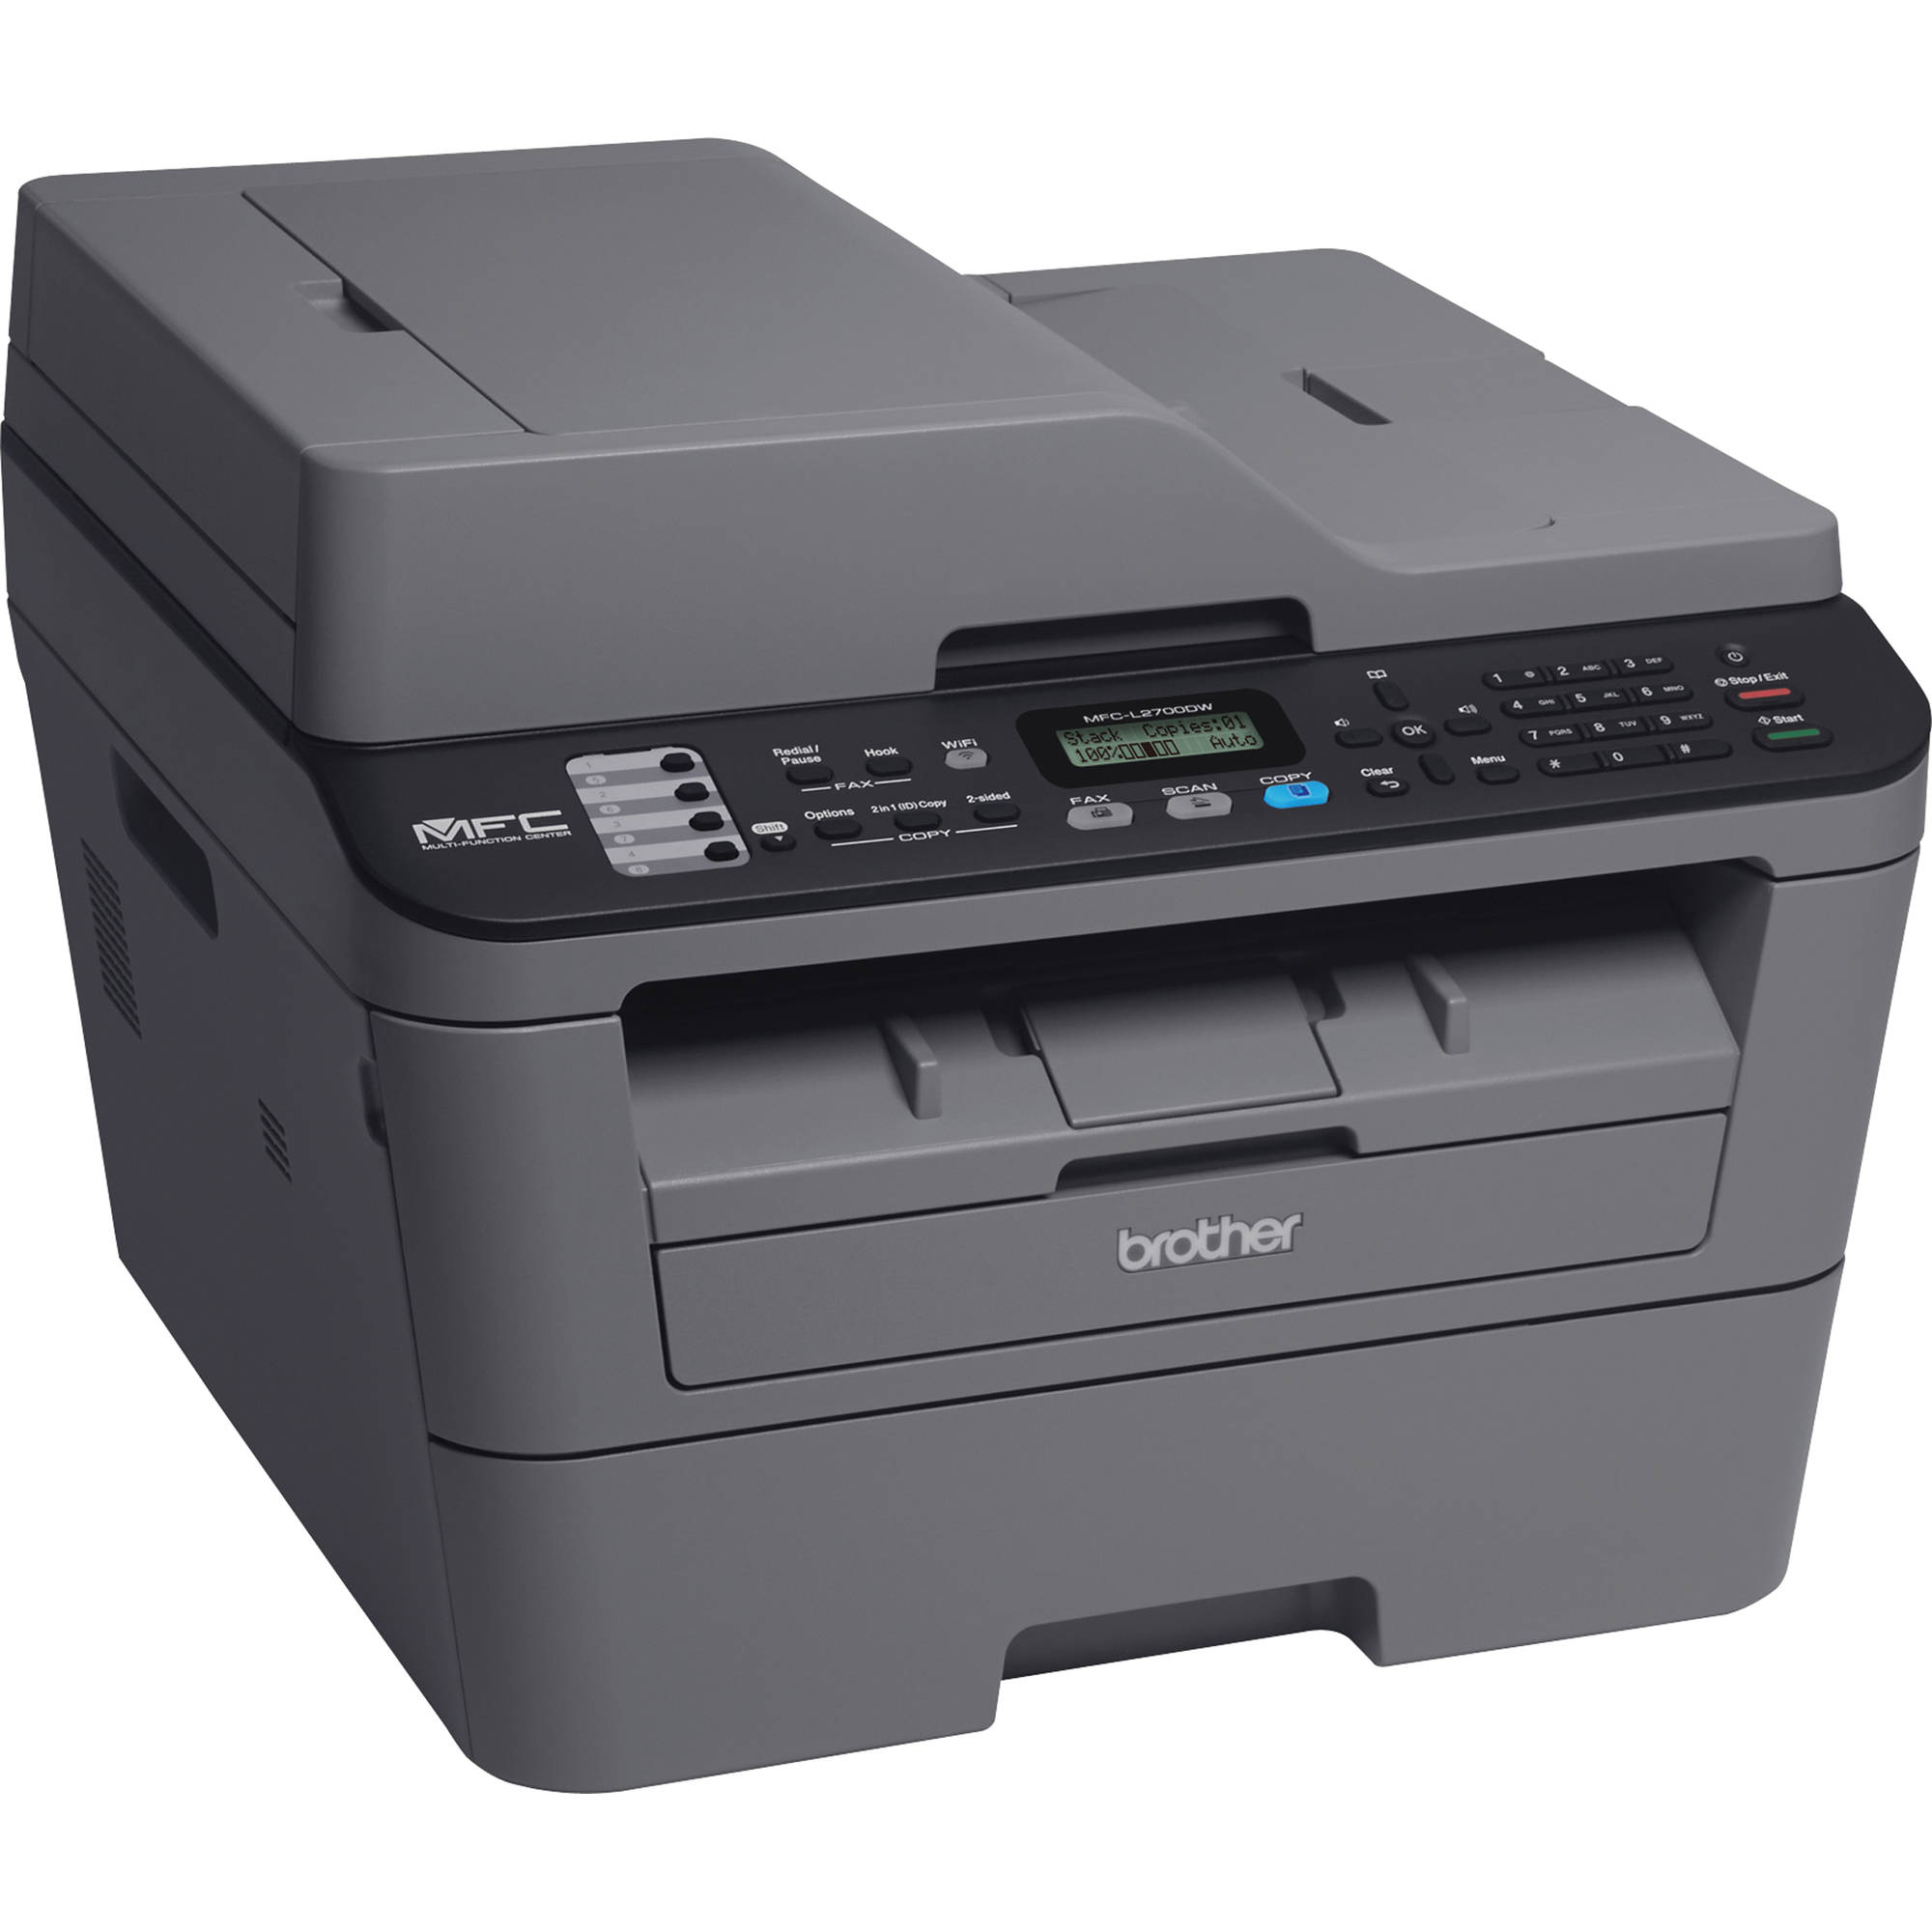 brother-mfc-9560cdw-toner.jpg